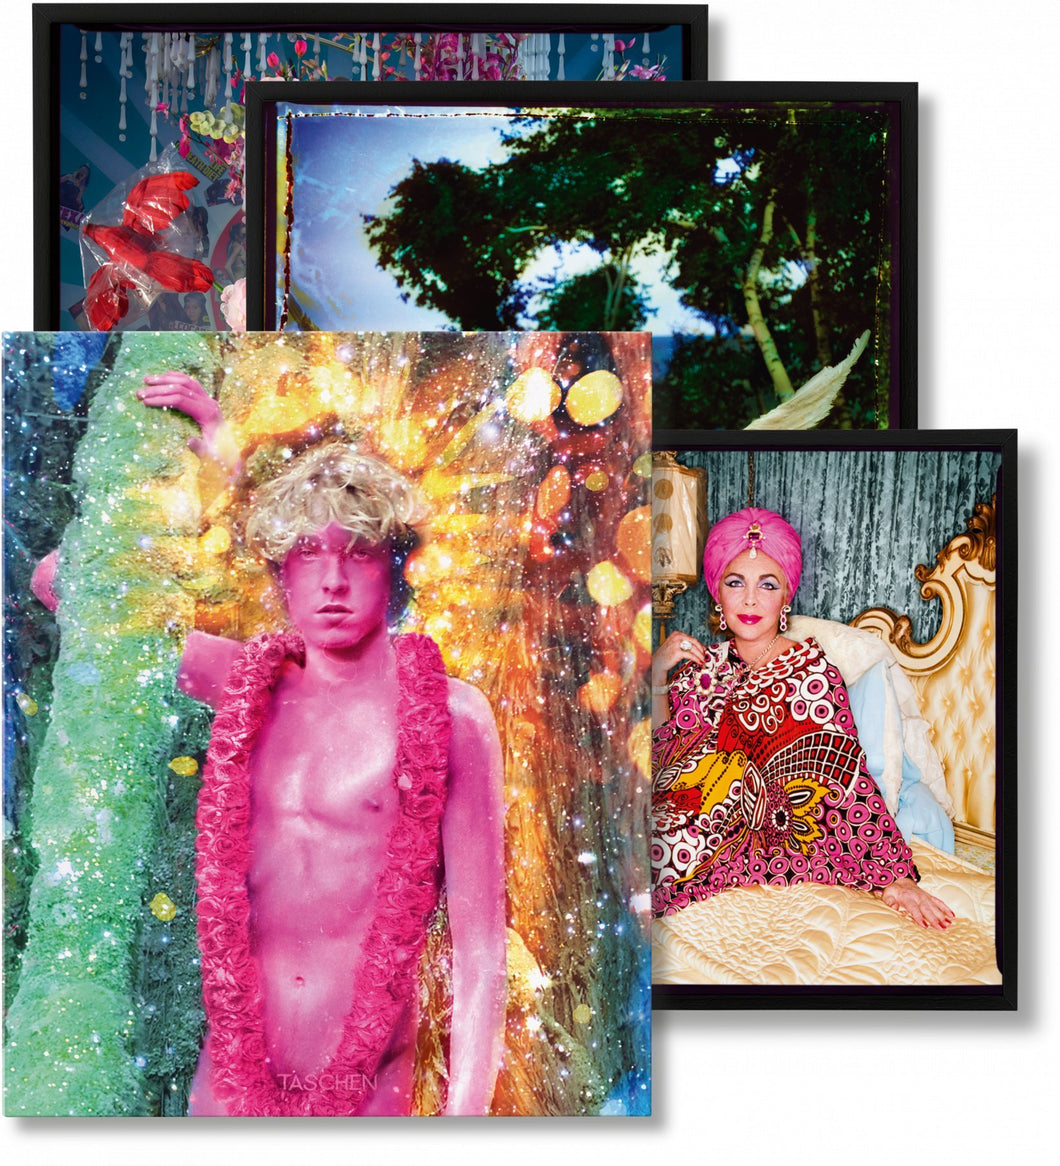 DAVID LACHAPELLE: LOST + FOUND ART EDITION